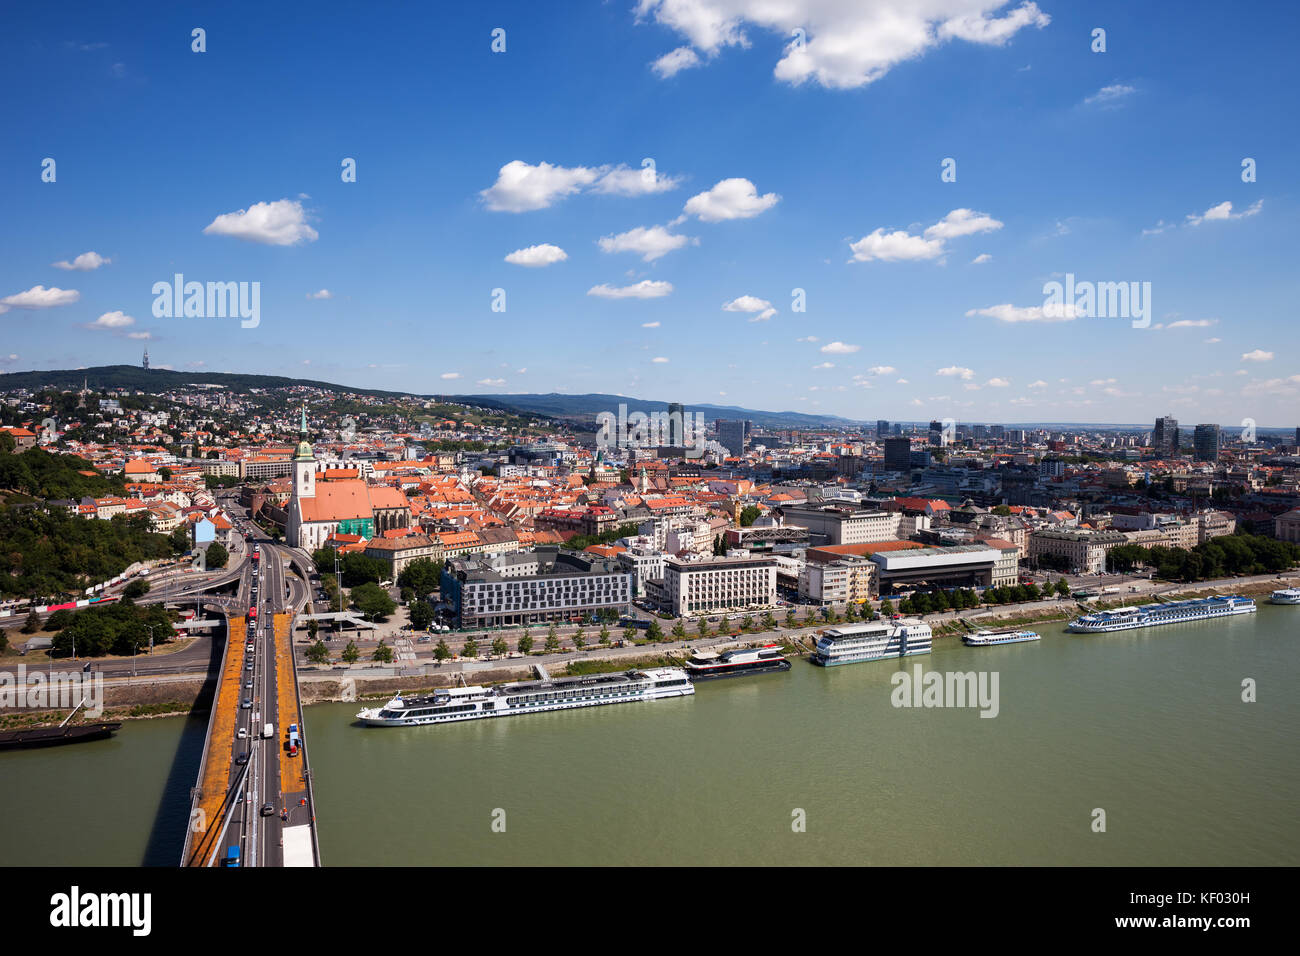 aerial view of the danube river stockfotos aerial view of the danube river bilder alamy. Black Bedroom Furniture Sets. Home Design Ideas